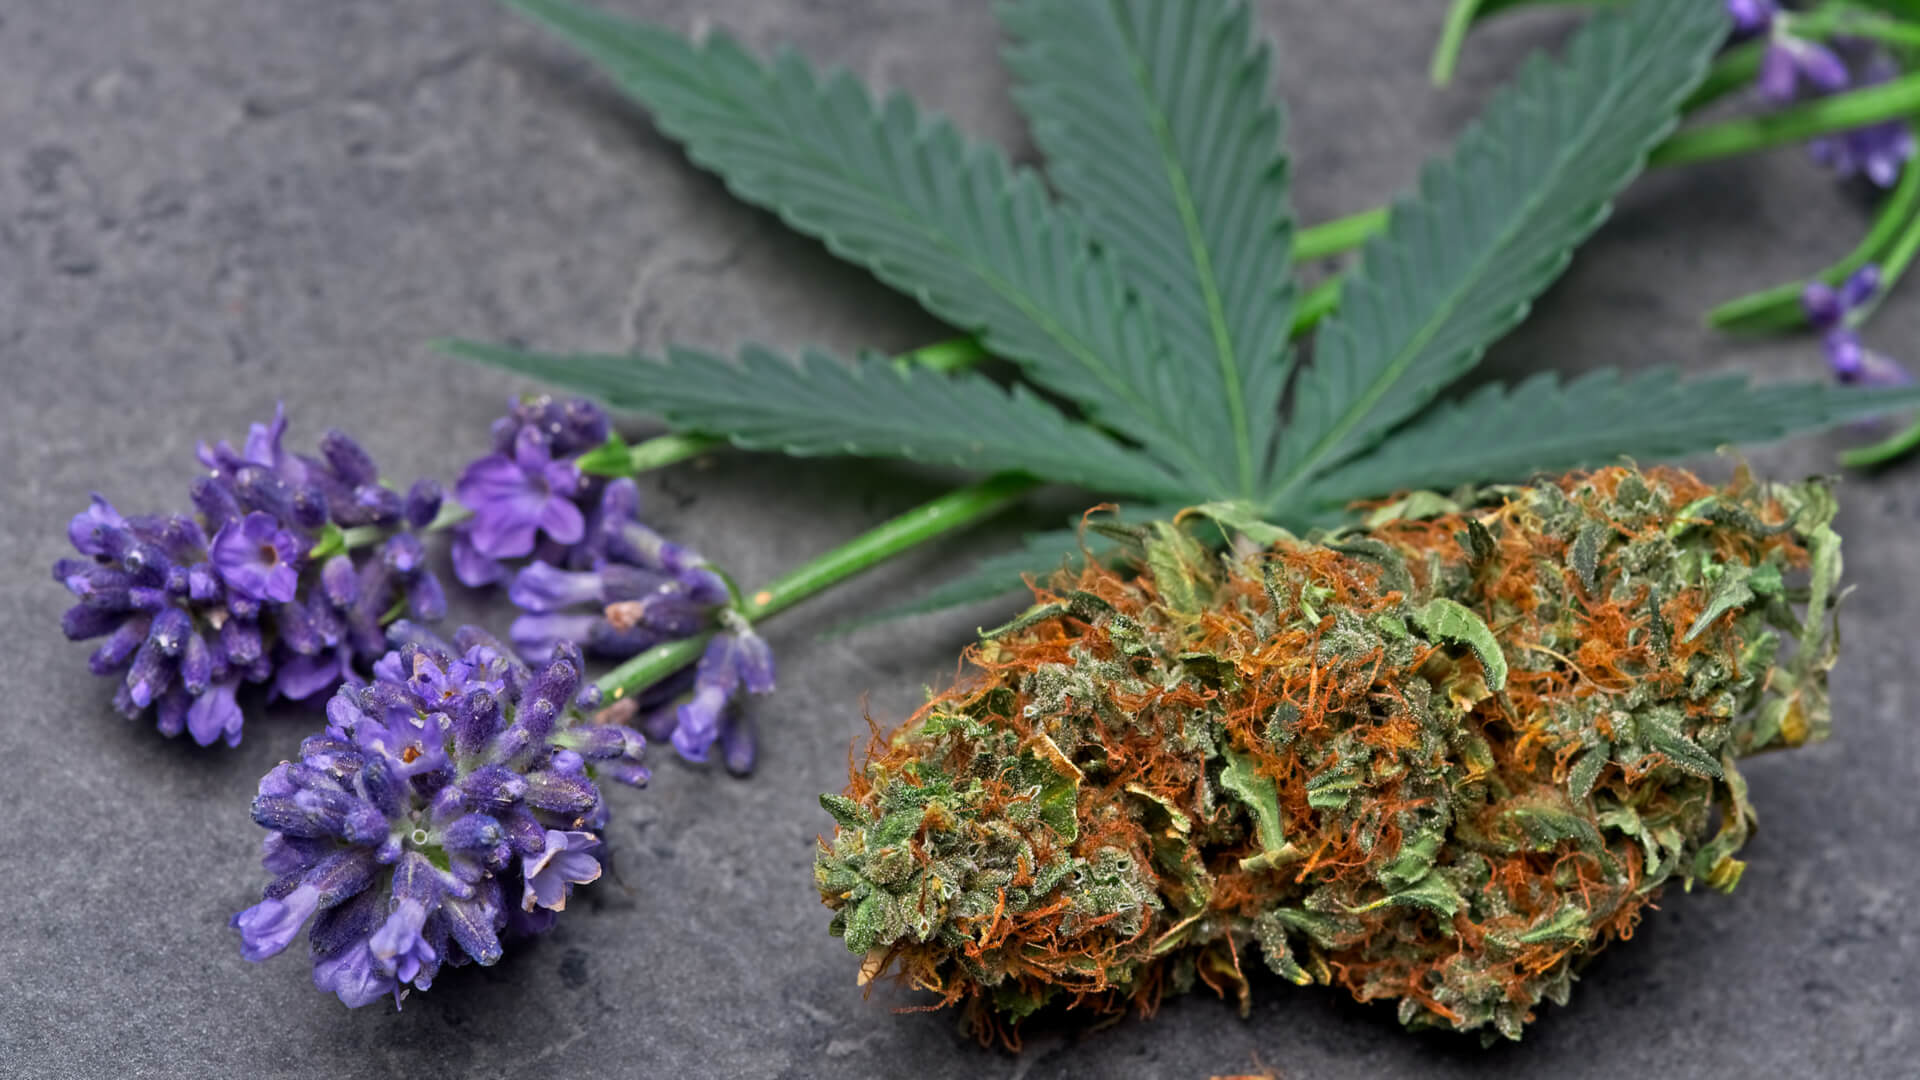 Closeup of a lavender flower next to a cannabis leaf and bud